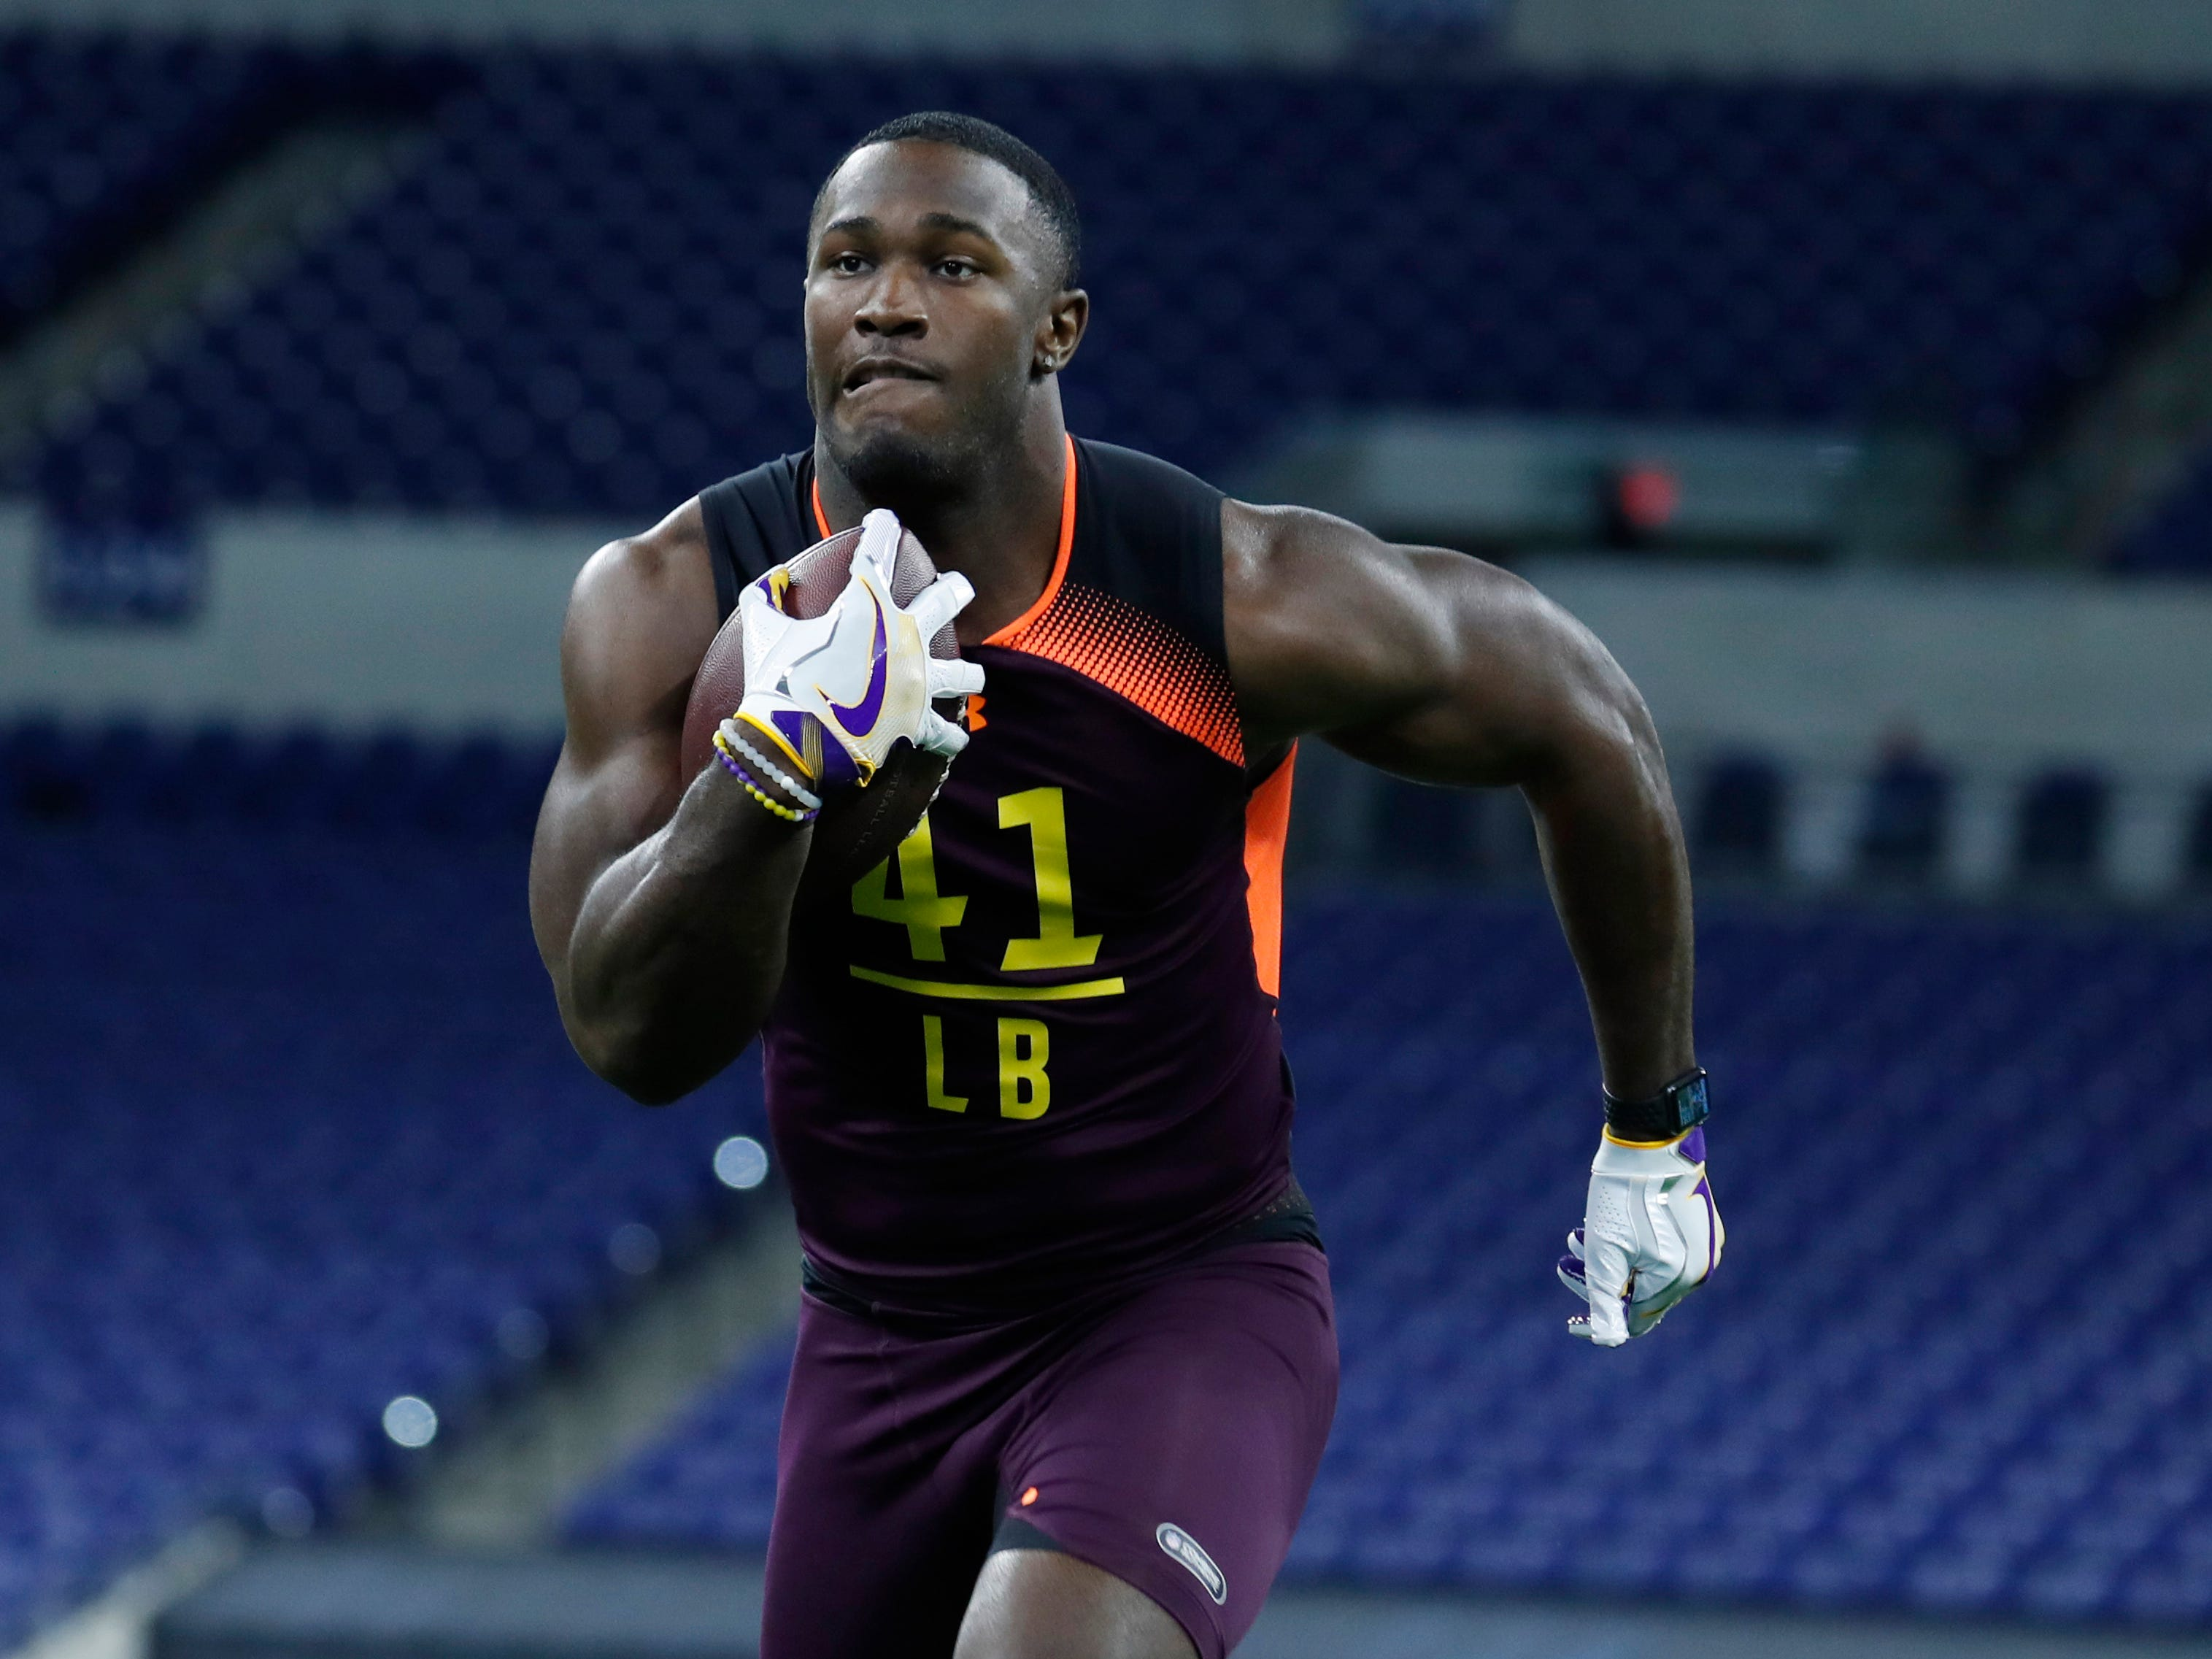 LSU Tigers linebacker Devin White goes through drills during the NFL combine at Lucas Oil Stadium, March 3, 2019 in Indianapolis.